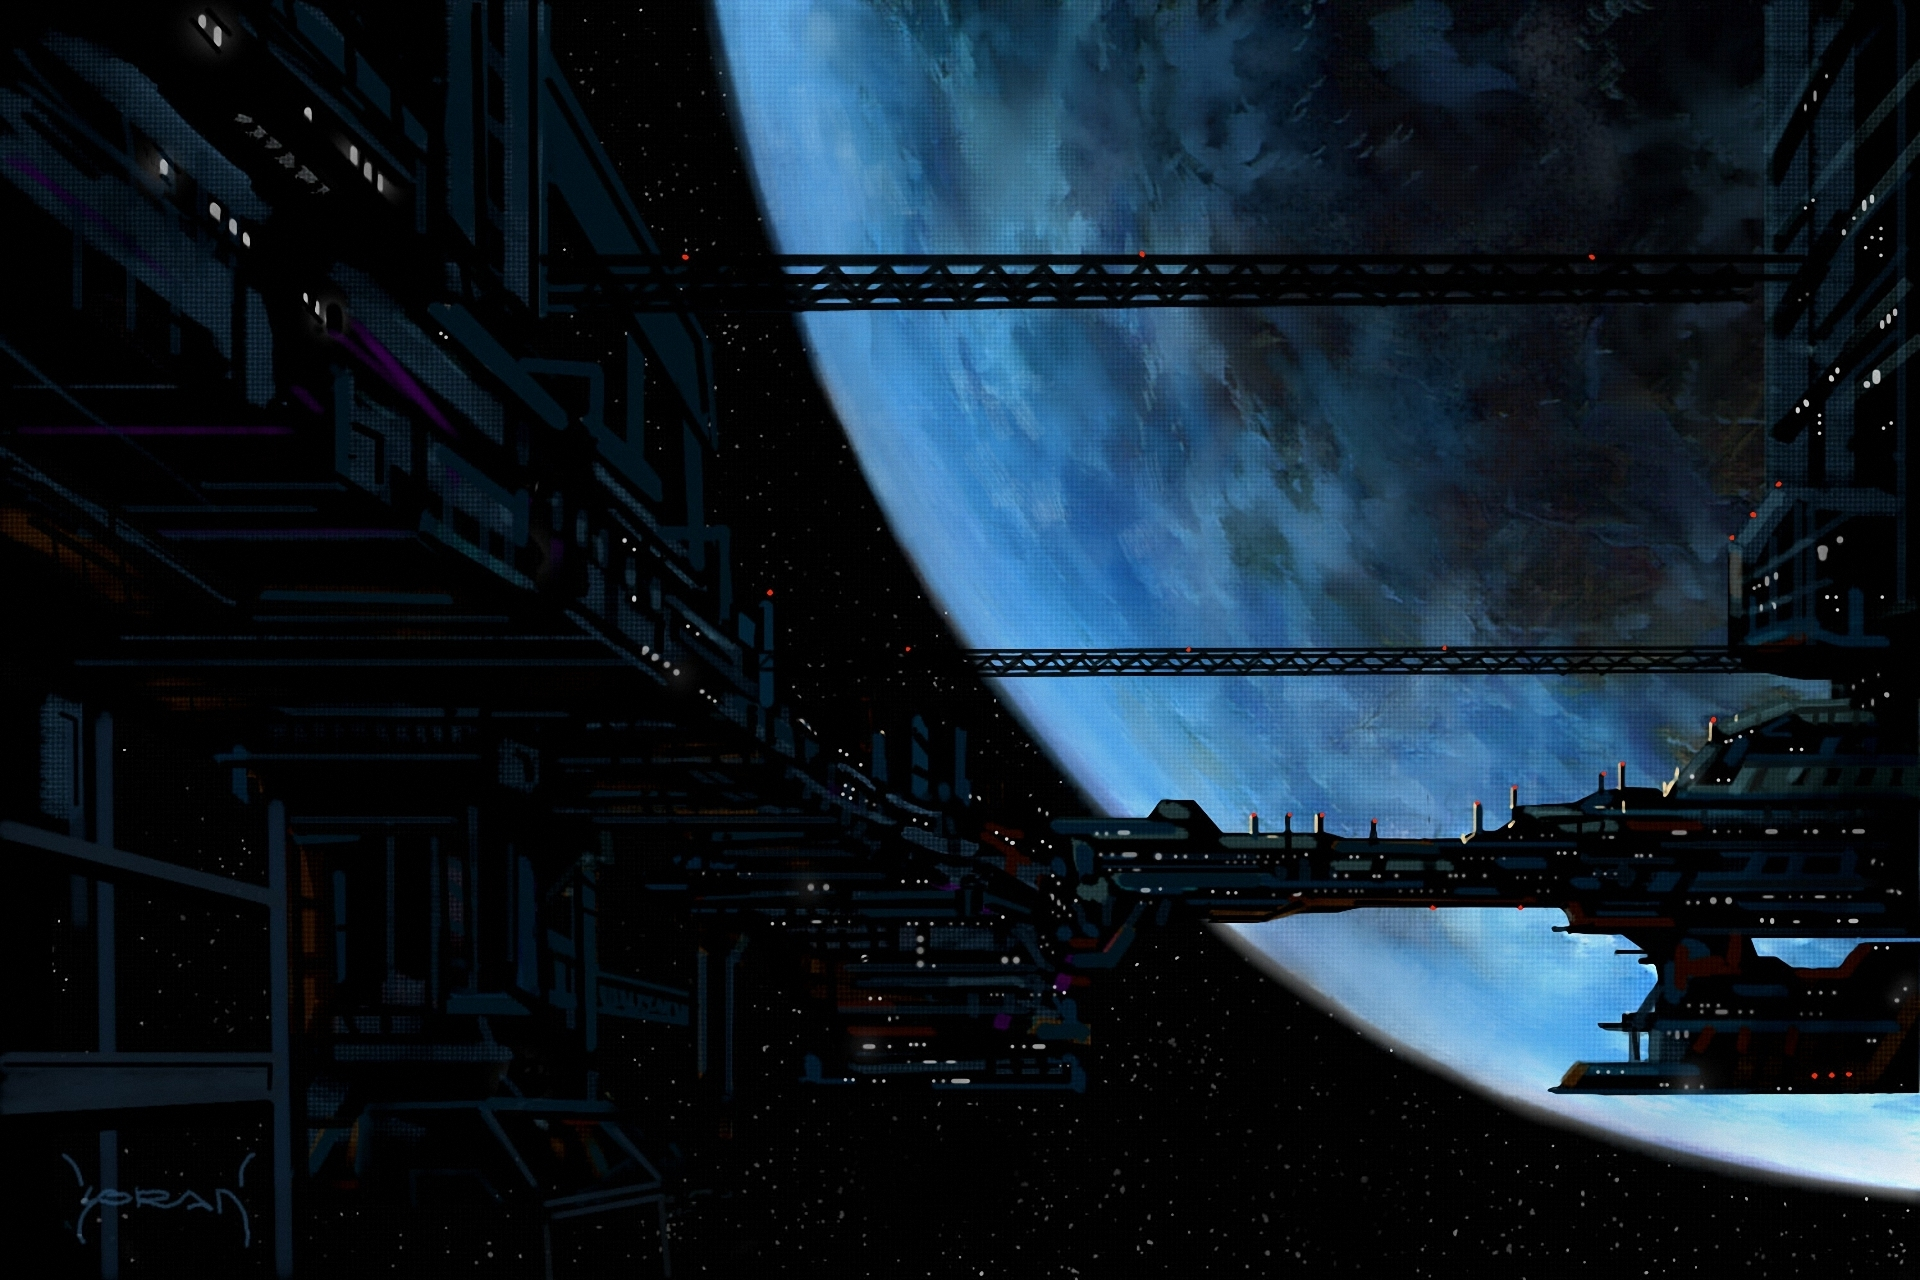 Sci fi ships wallpaper wallpapersafari for Sci fi background